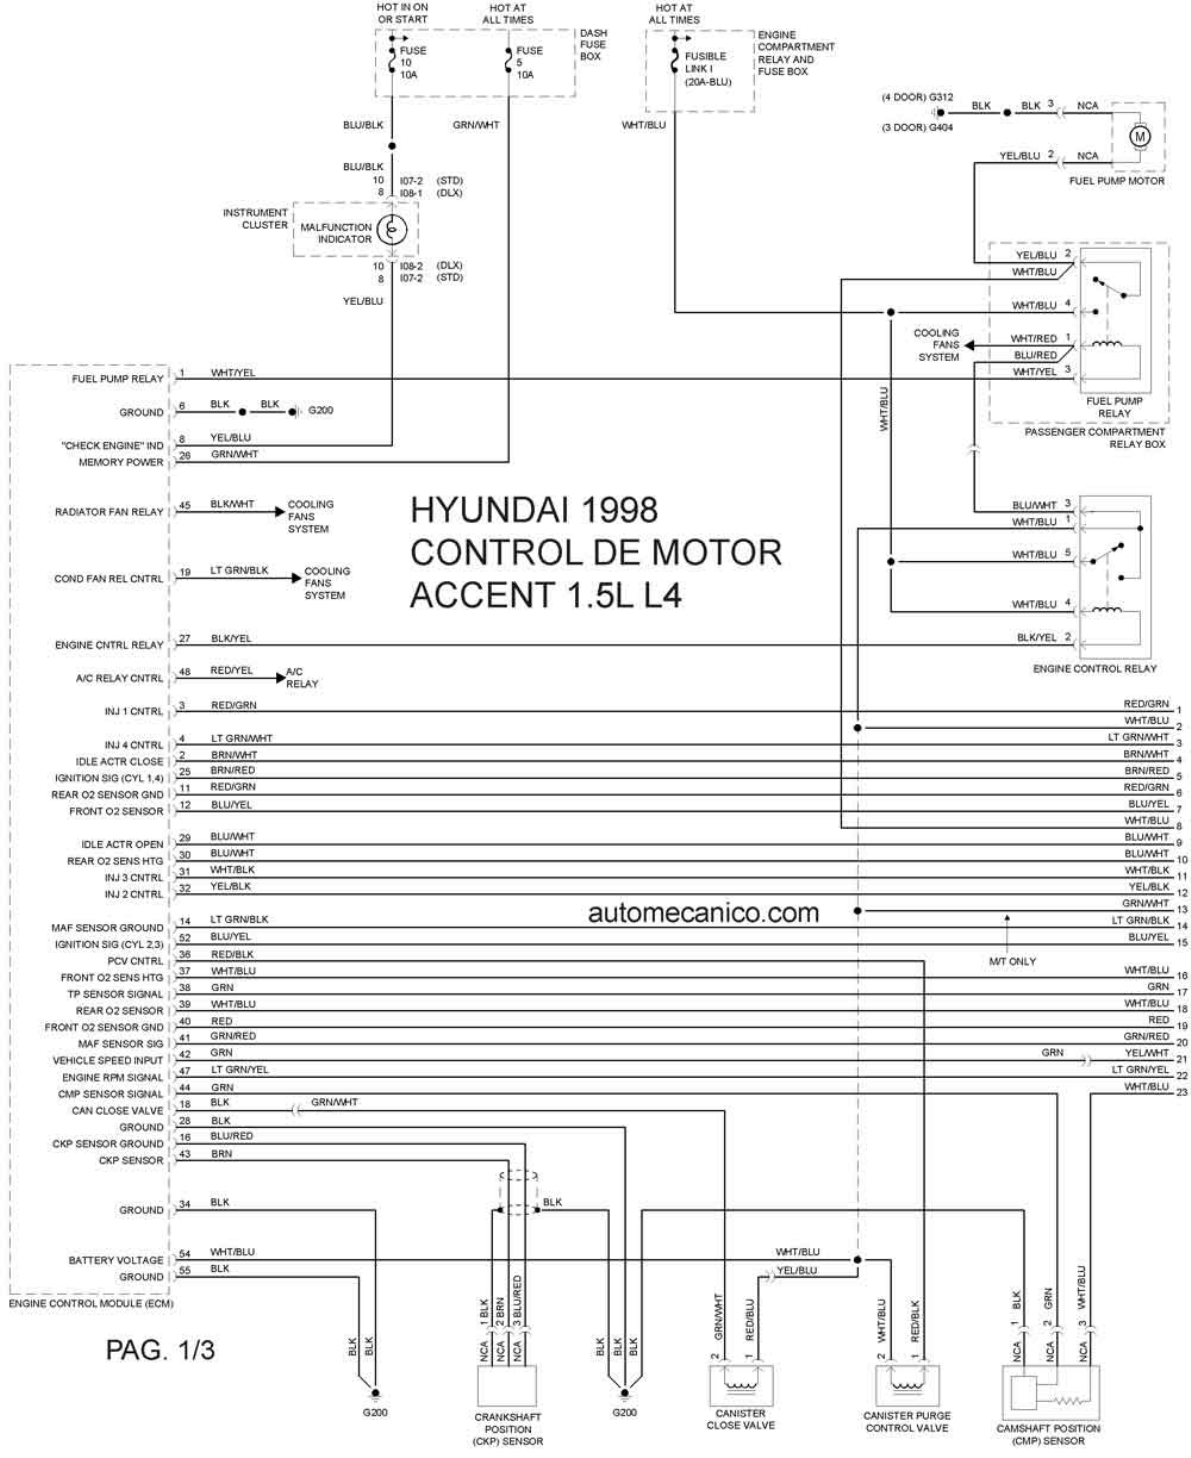 Hyundai accent 1998 misc document wiring diagram pdf asfbconference2016 Image collections